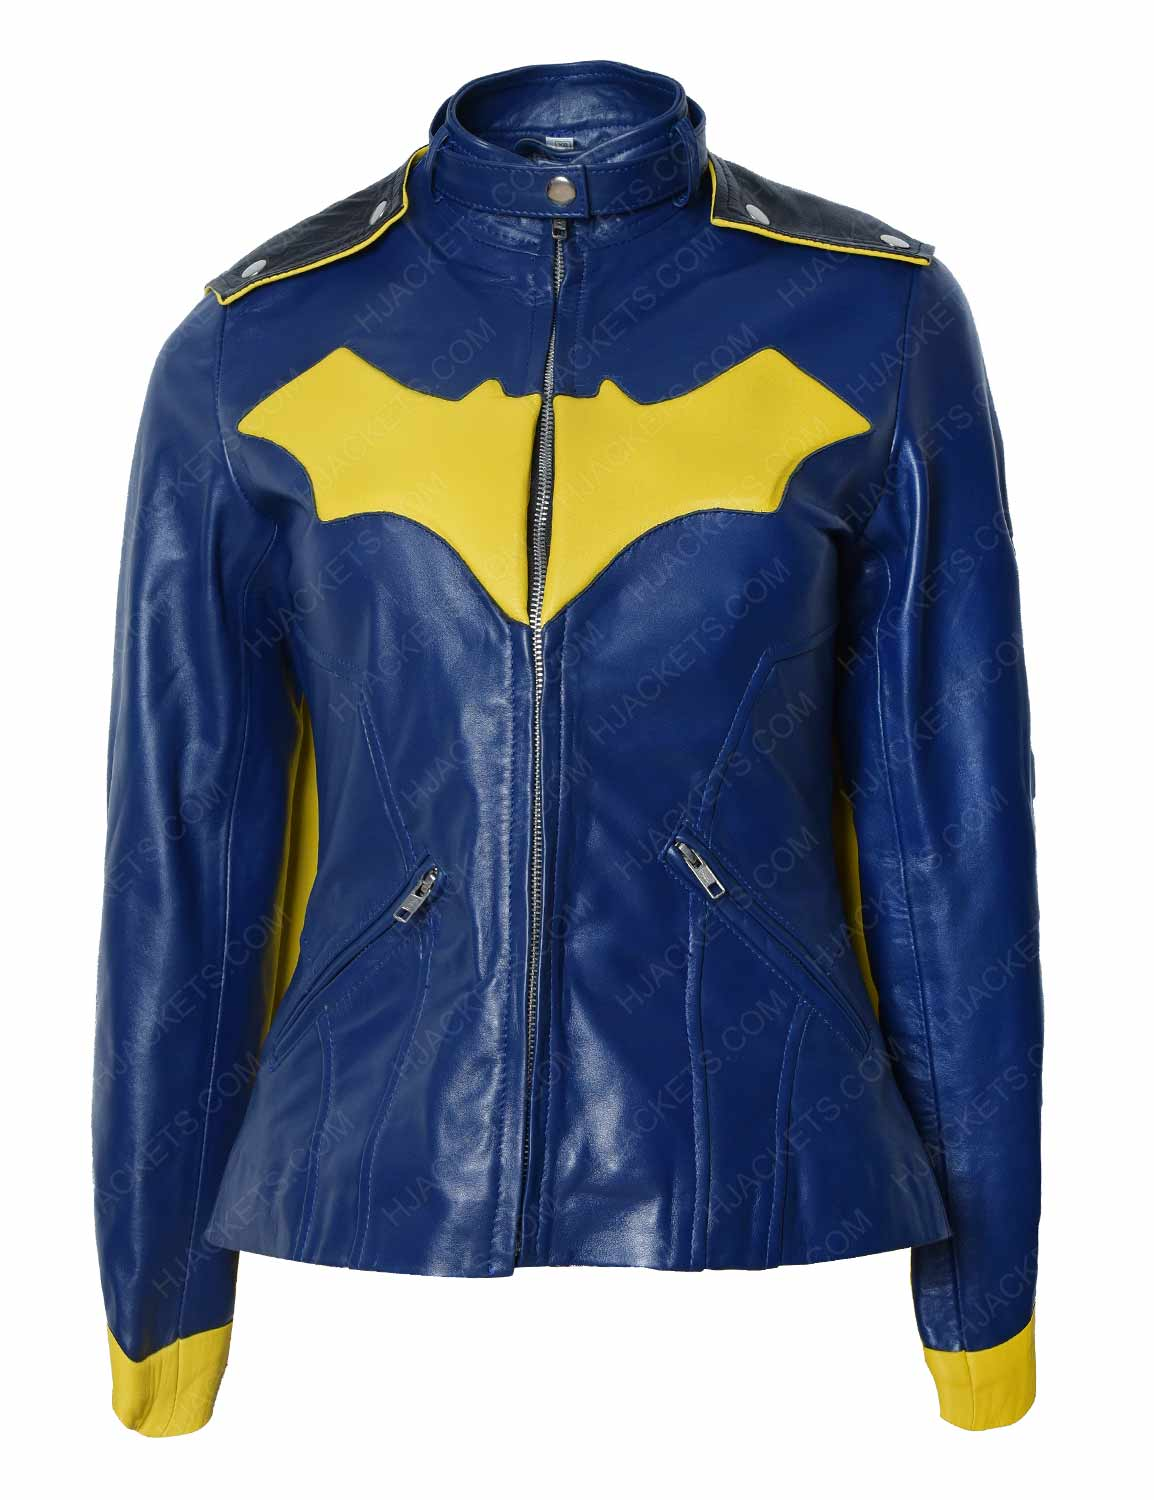 Batman Arkham Knight Batgirl Leather Jacket